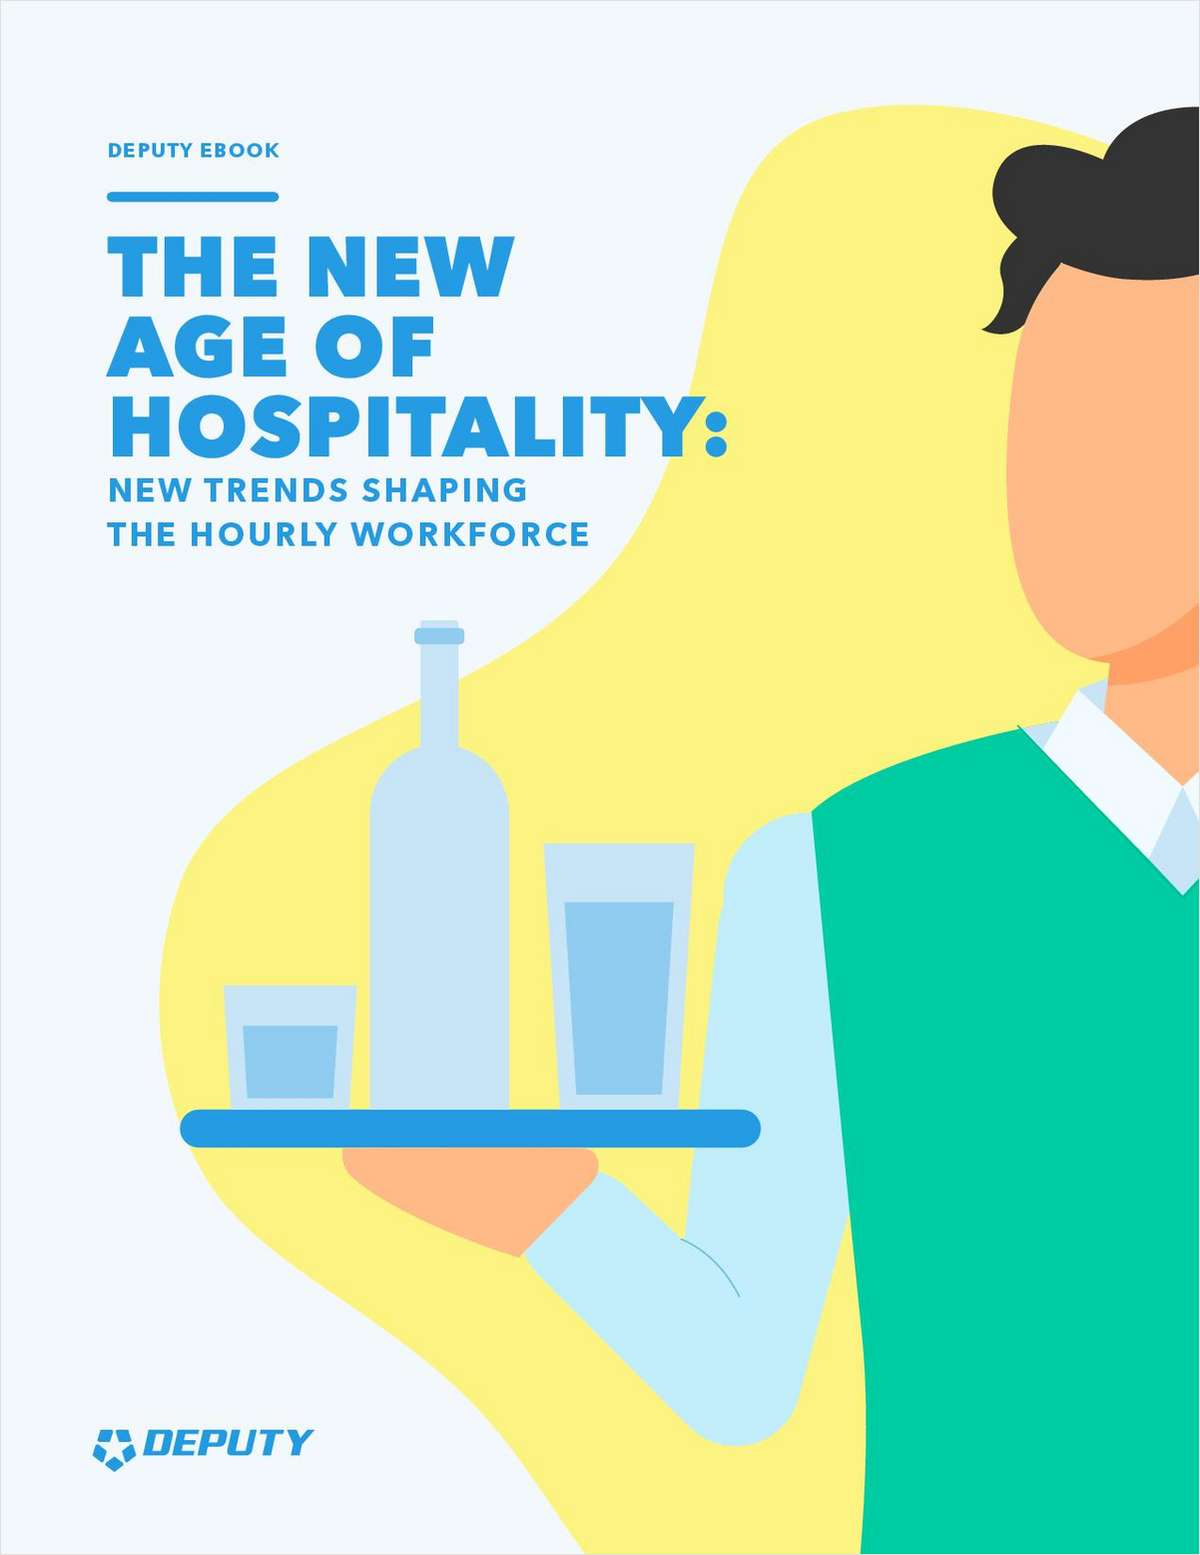 The New Age of Hospitality